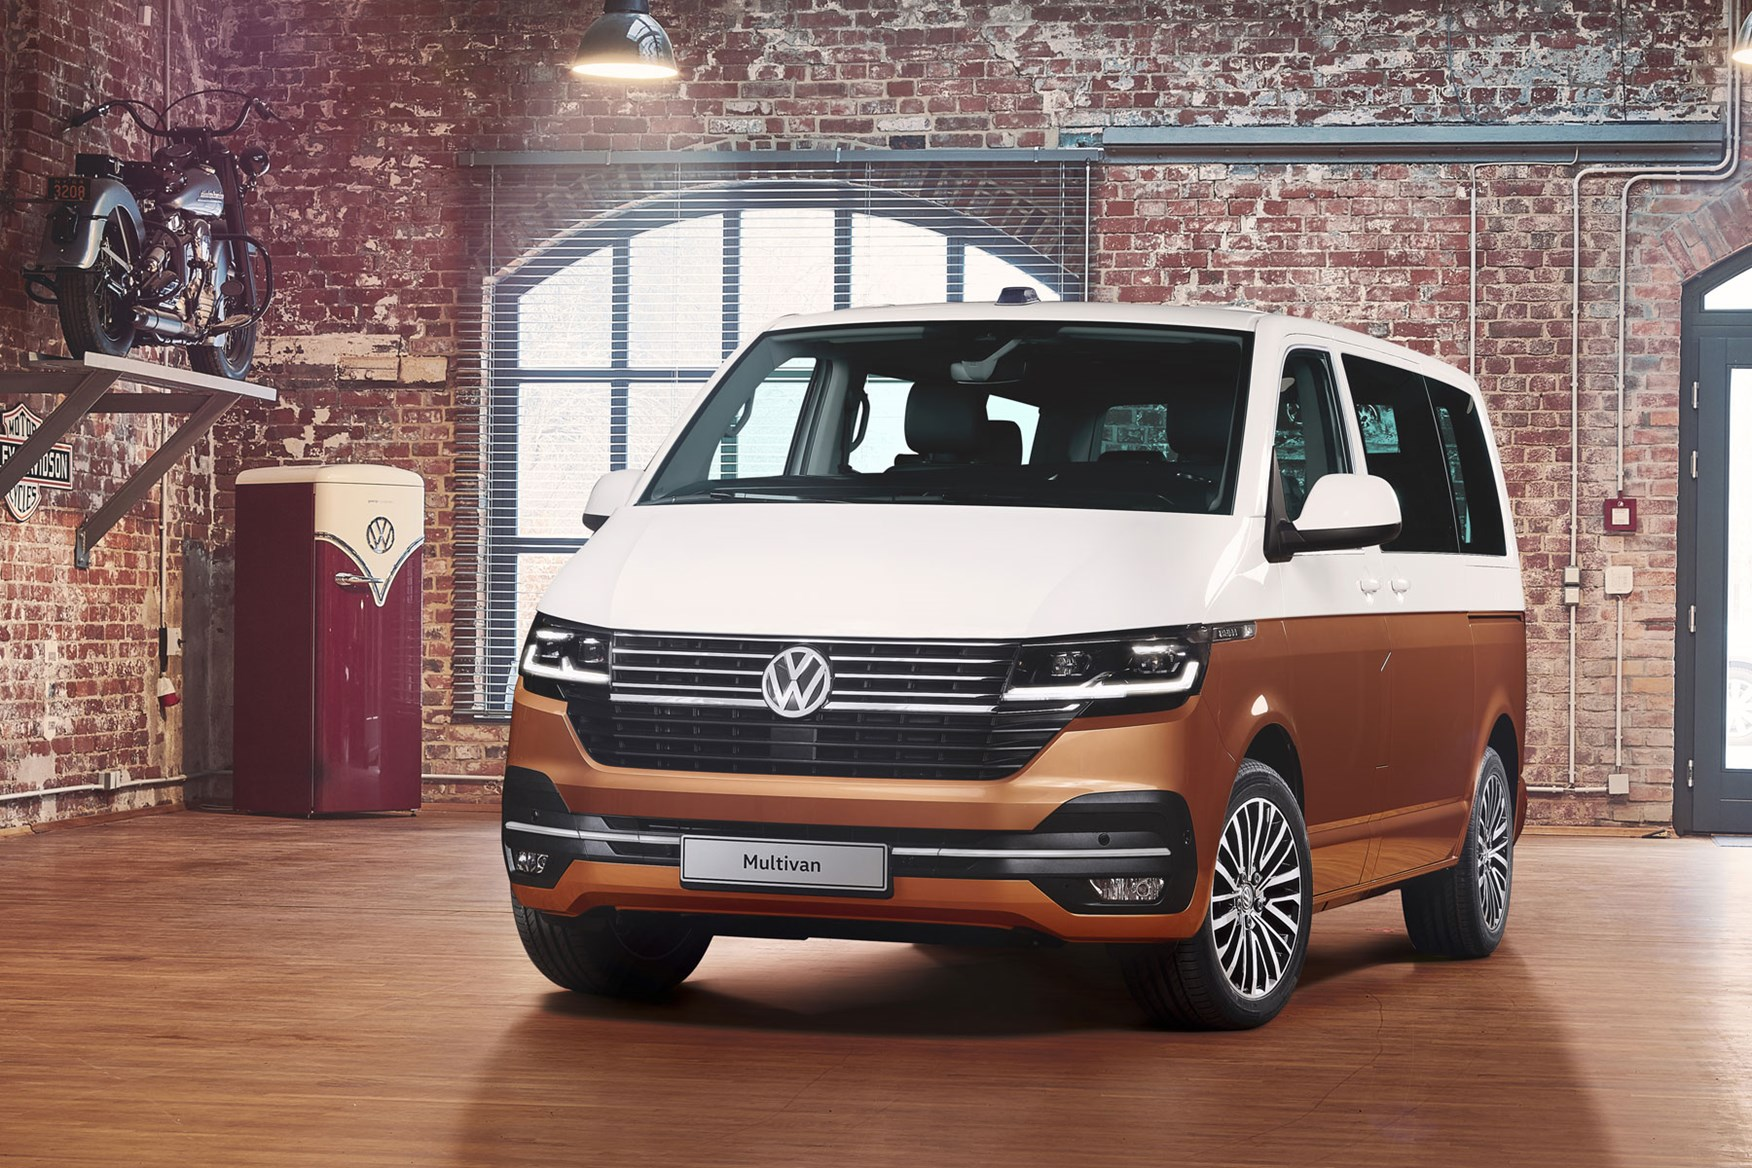 2019 VW Transporter T6.1 facelift